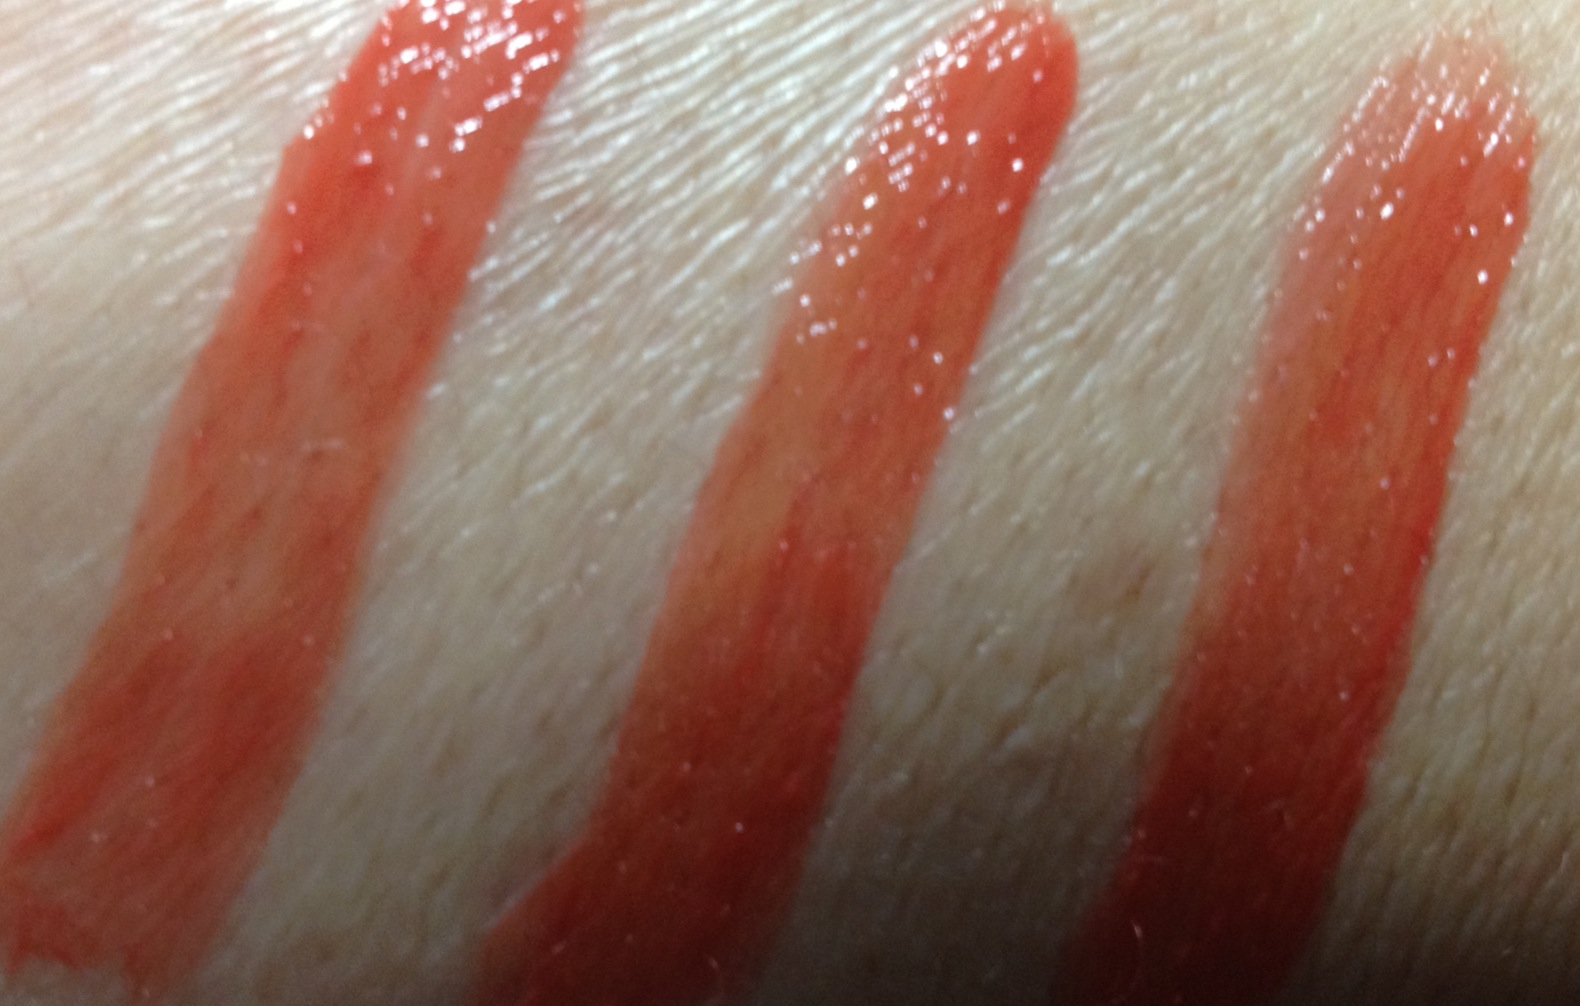 Loreal colour caresse wet shine stain - Loreal Colour Caresse Wet Shine Stain Coral Tattoo